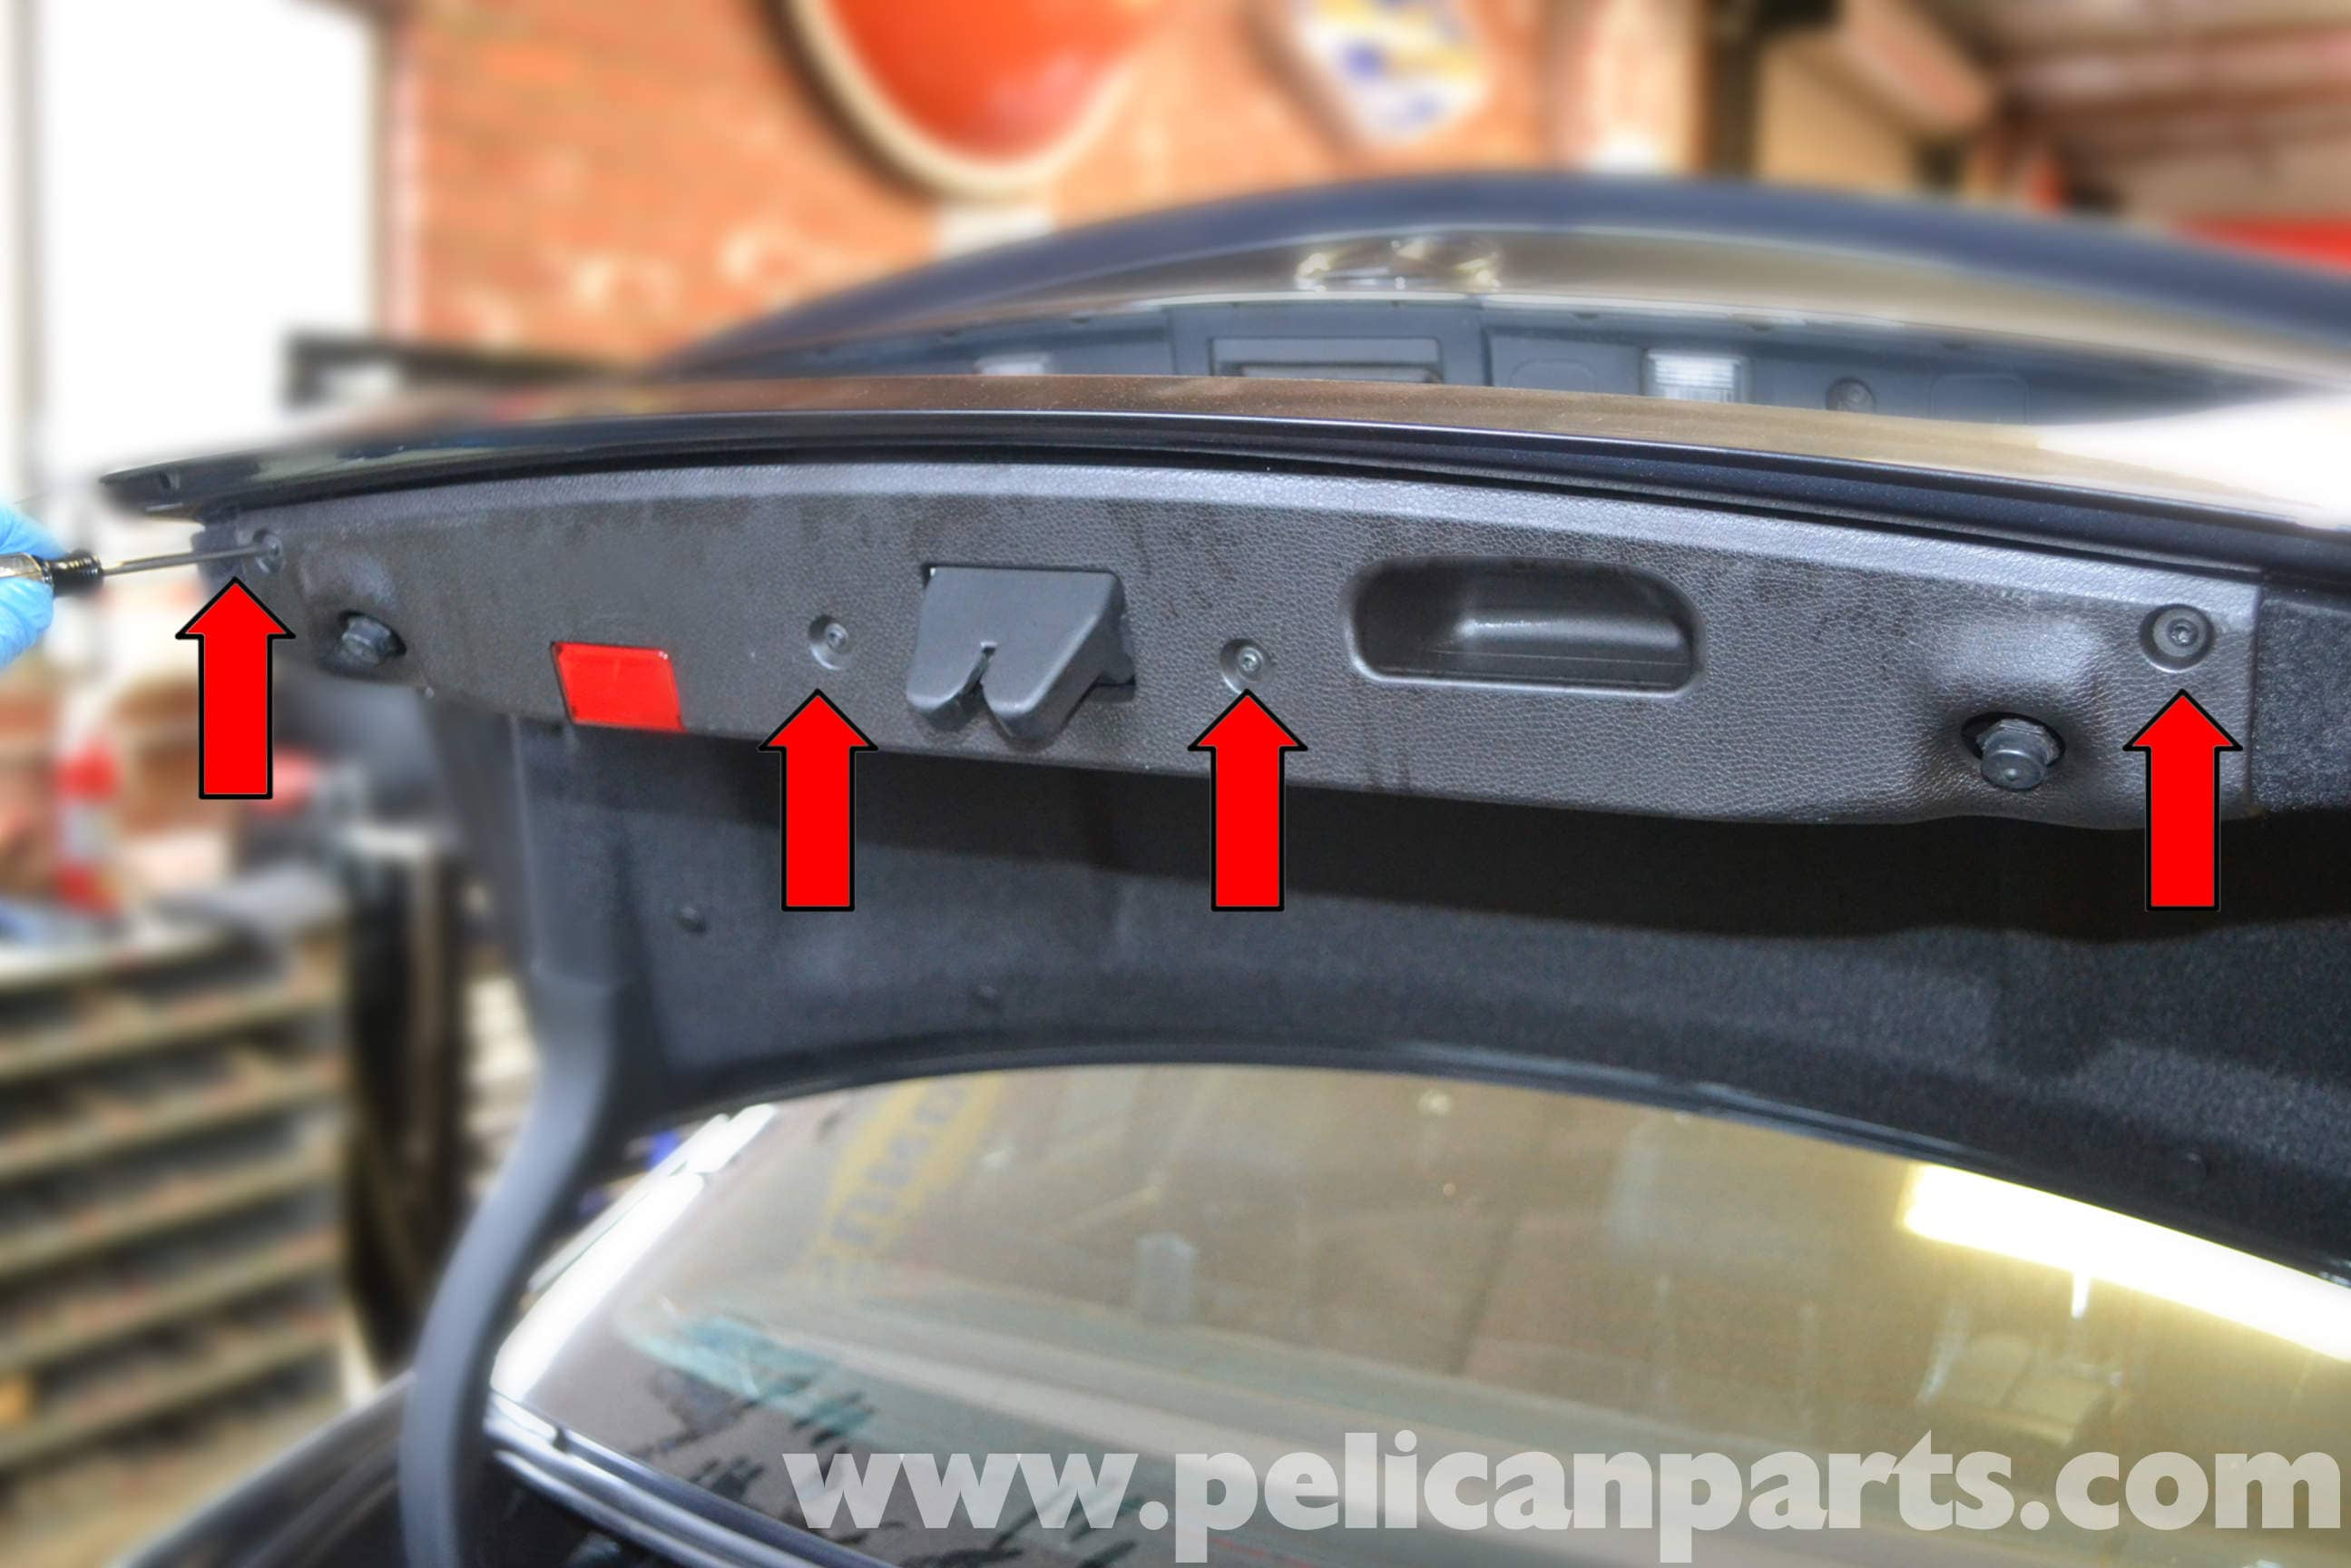 Mercedes Benz W204 Trunk Interior Panel And Trim Removal 2008 2014 C250 C300 C350